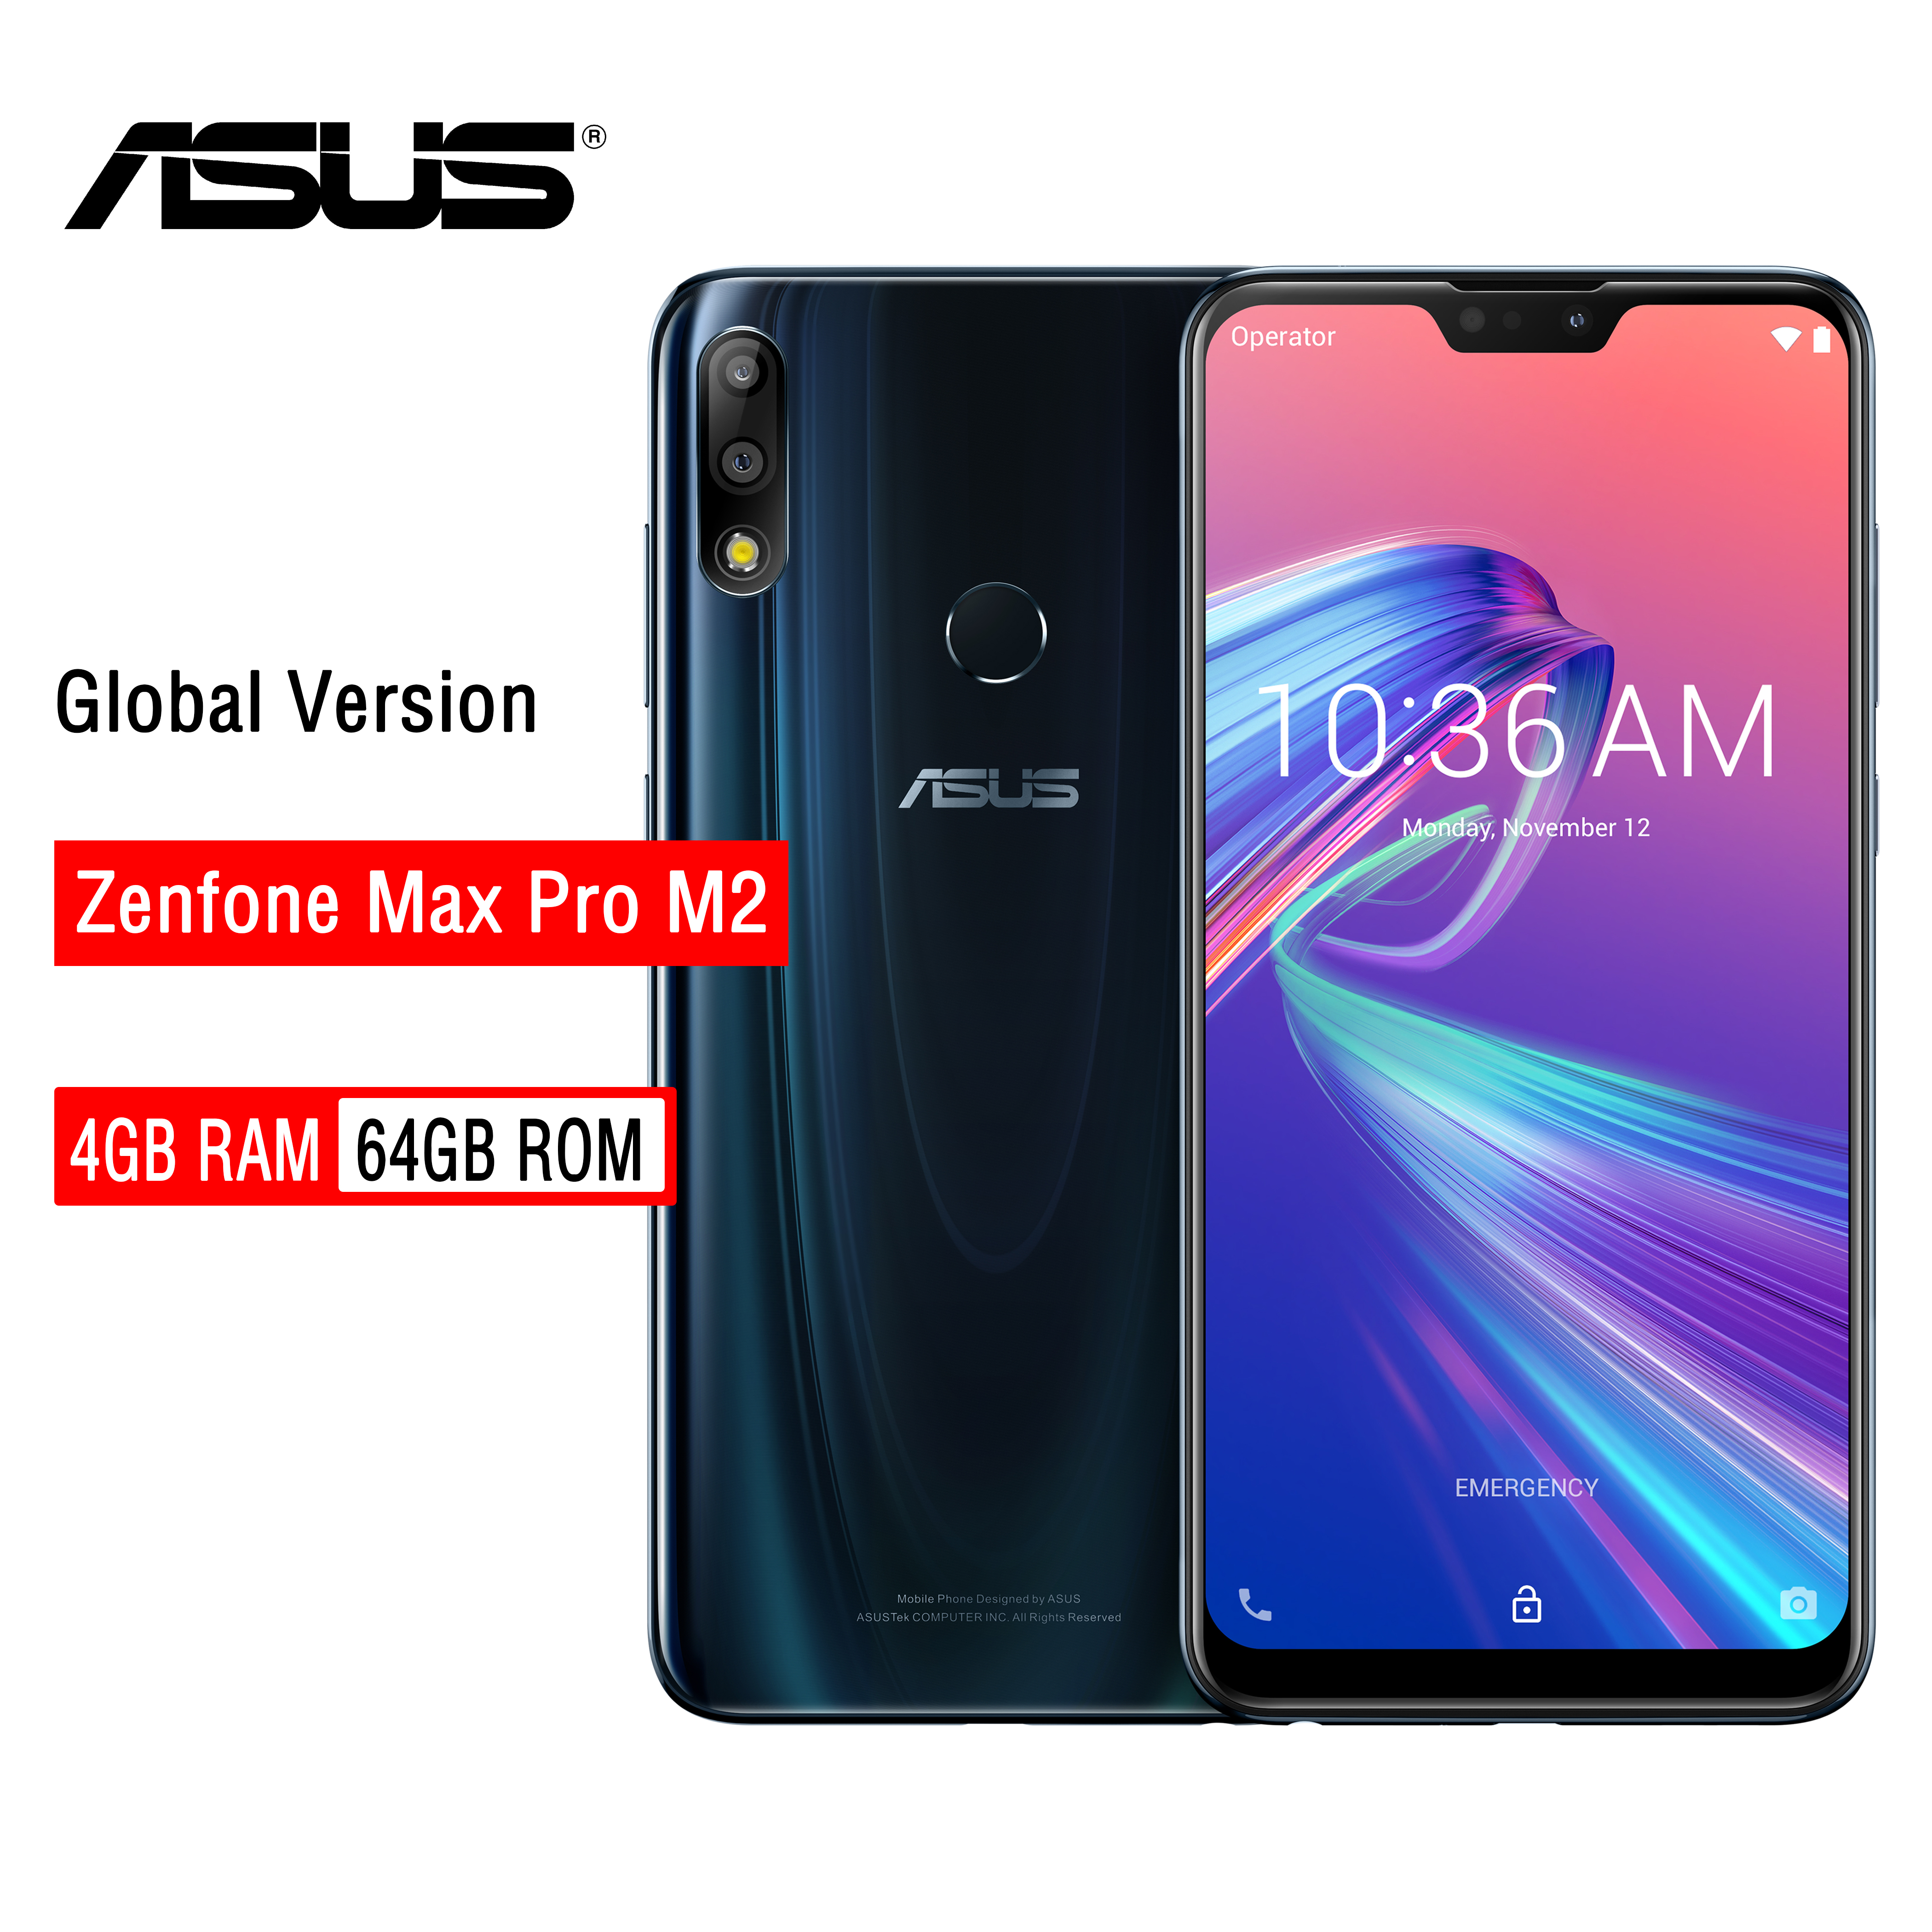 ASUS ZenFone Max Pro M2 ZB631KL 4GB RAM 64GB ROM NFC 6.3 inch 4G LTE Face ID 5000mAh Android 8.1Smartphone Gaming Phone